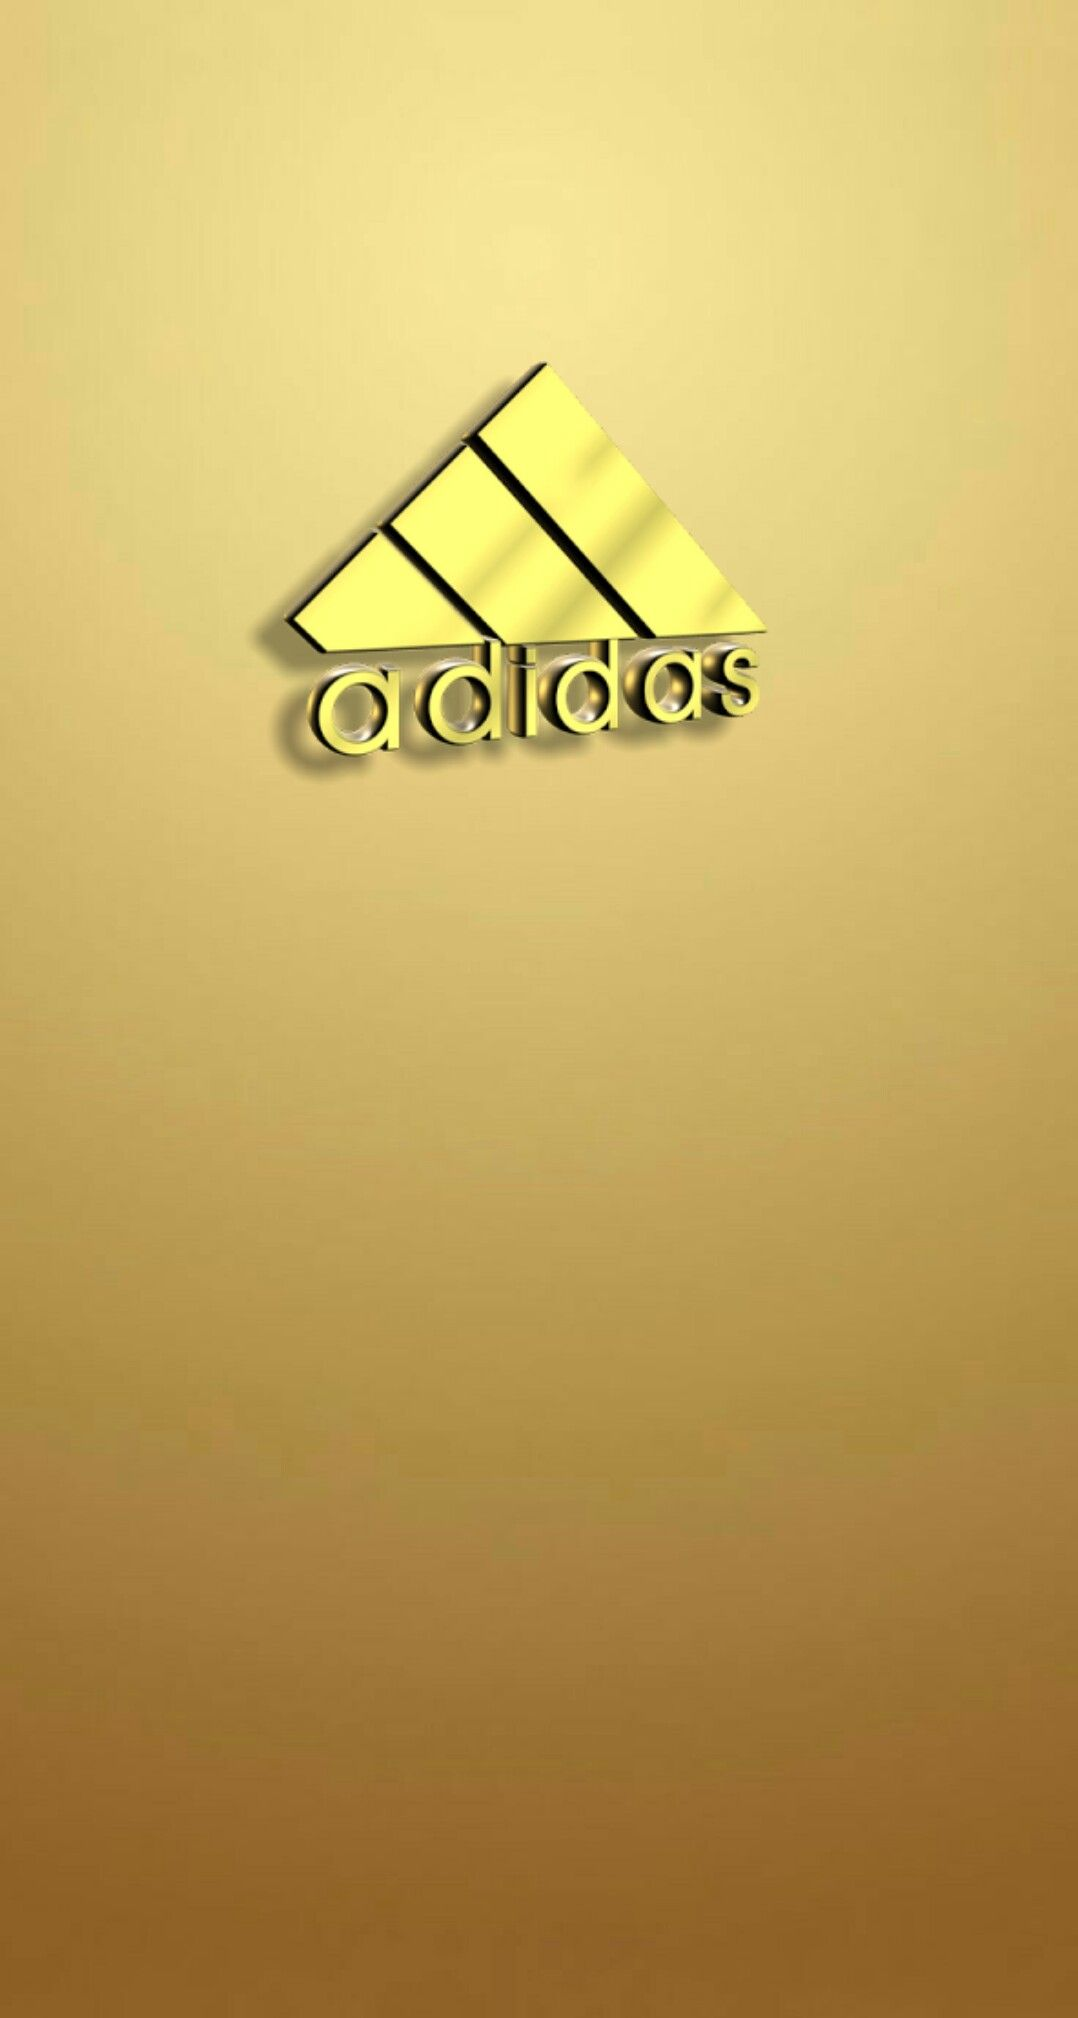 Wallpaper quiksilver iphone 5 -  Adidas Gold Wallpaper Android Iphone